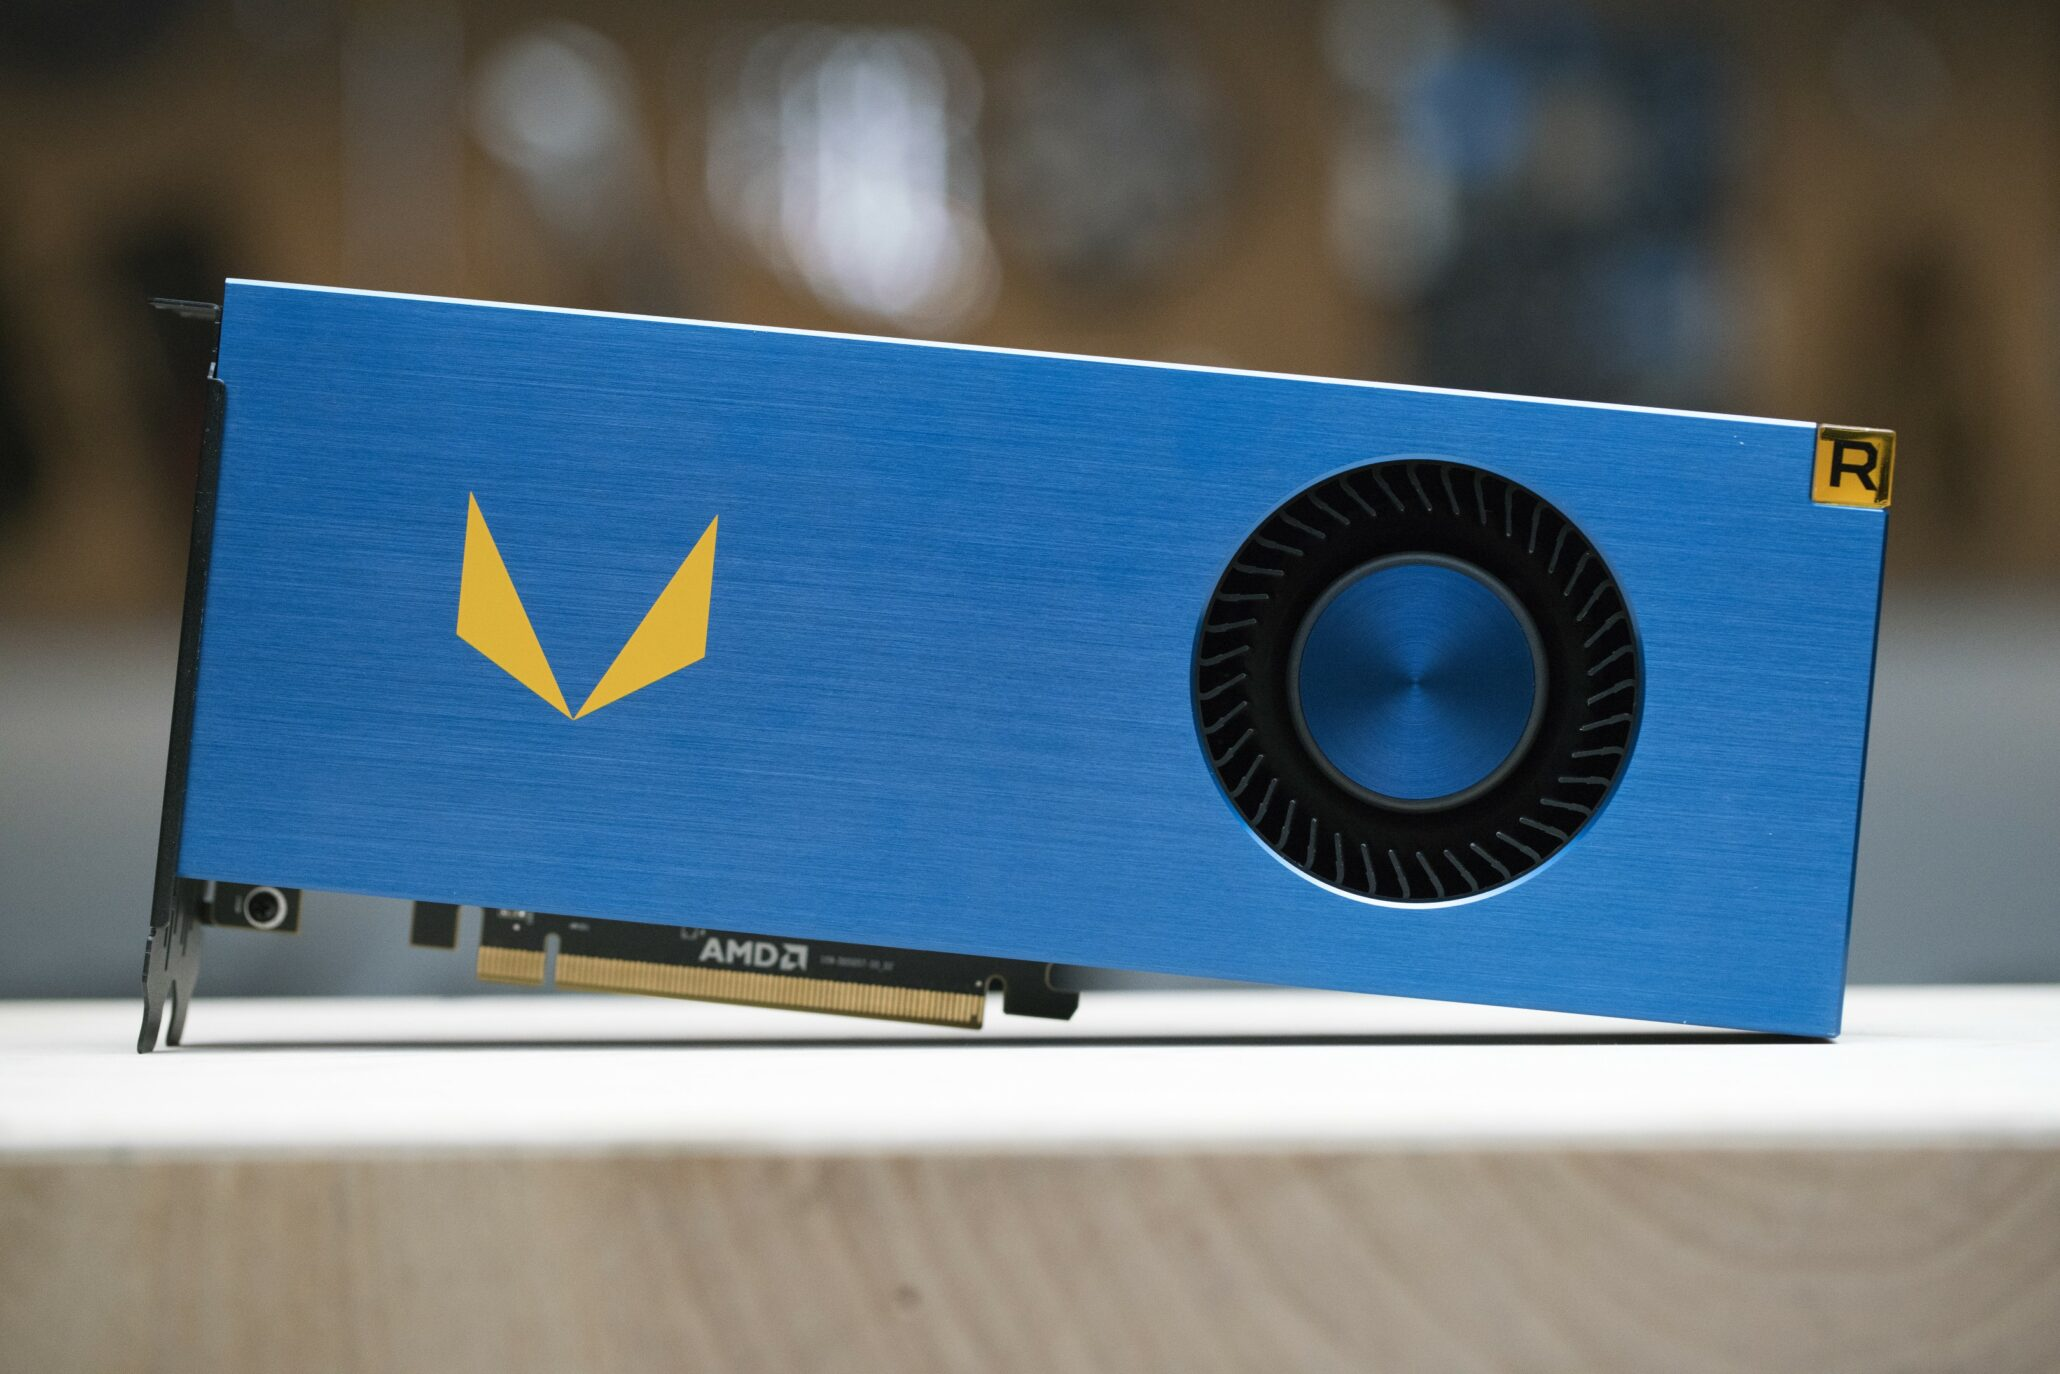 Amd Radeon Vega Frontier Edition 16 Gb Graphics Card Previewed You Are Here About Us Gt Why Power Engineering Amds Officially Launches Today The New Is Aimed At Data Scientists Immersion Engineers And Product